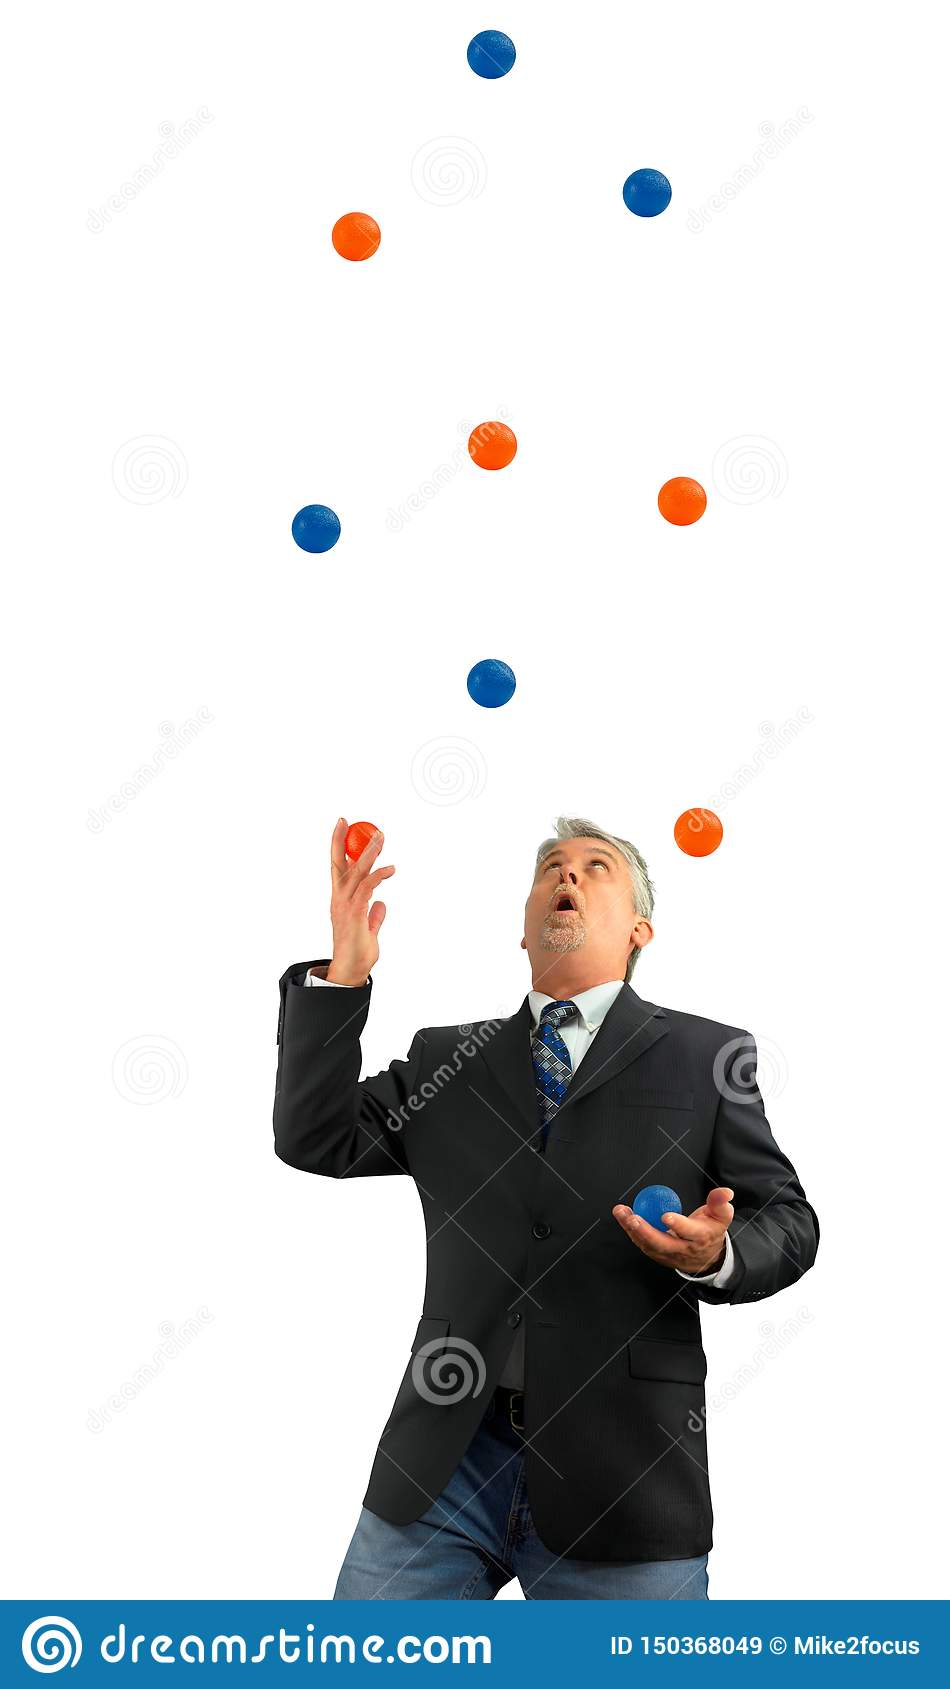 Man juggling a lot of several balls in the air representing being busy in life and business with several stressful things